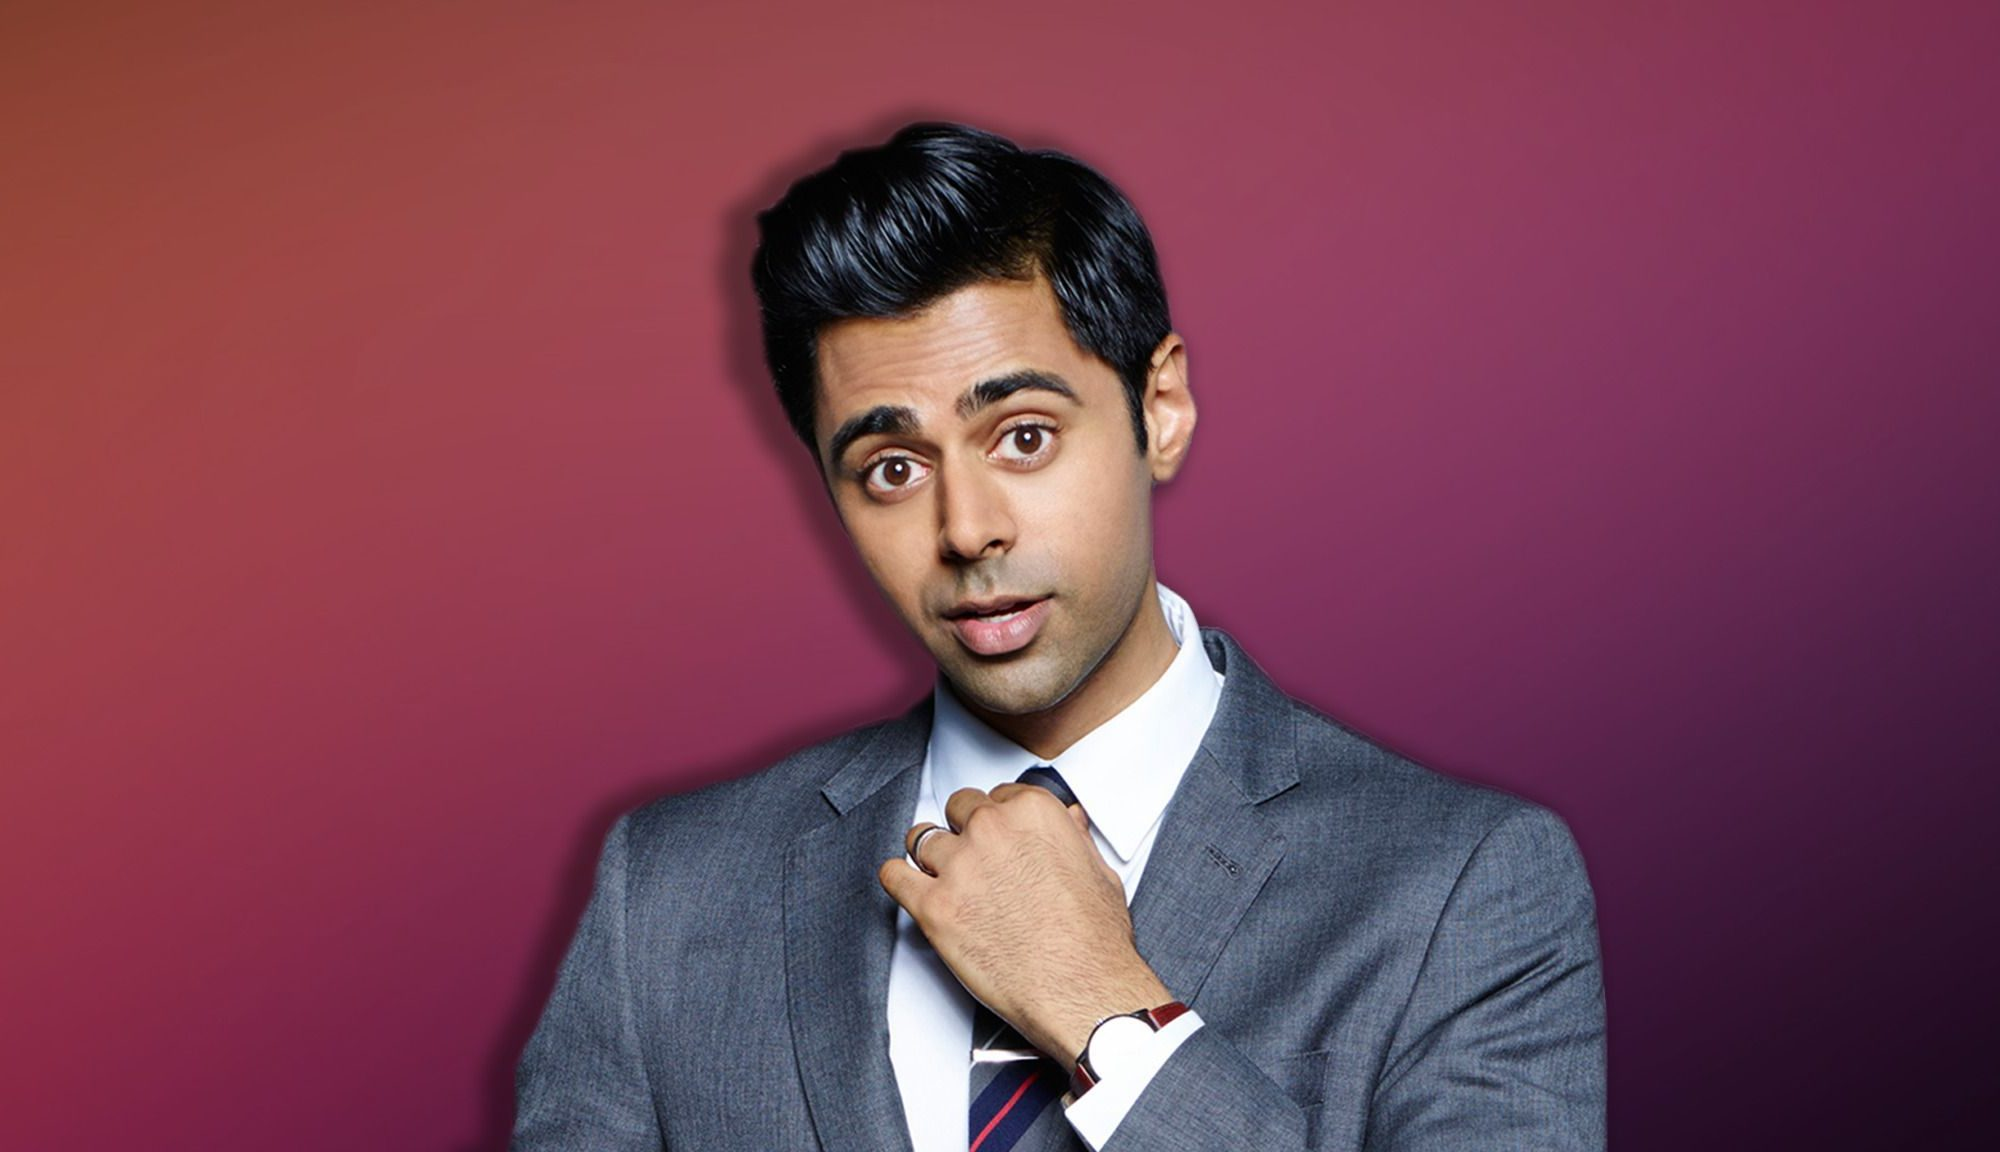 Hasan Minhaj, comedy show, comedy event, upcoming event in California, desi event, Indian event, events today, events near me, events nearby